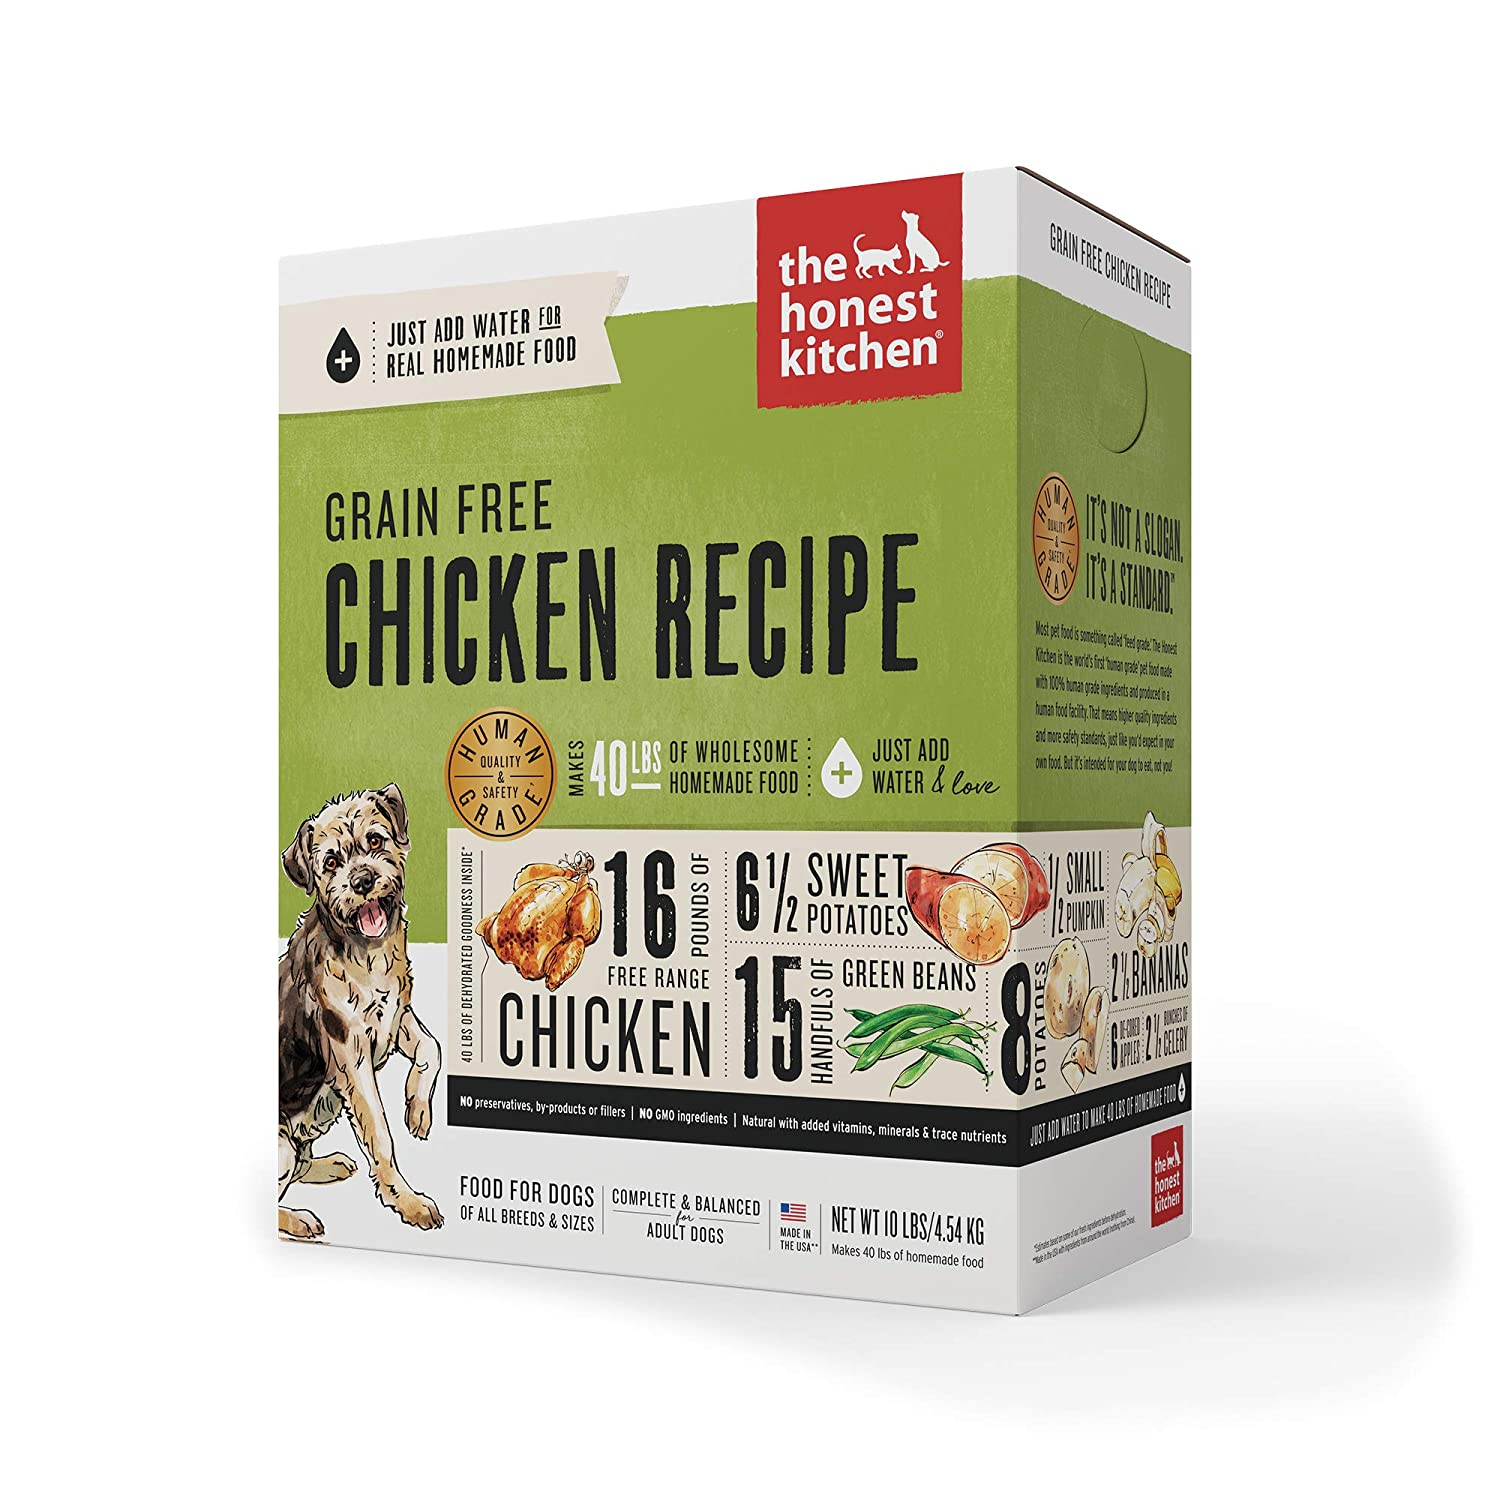 4. The Honest Kitchen Grain-Free Chicken Recipe Dehydrated Dog Food